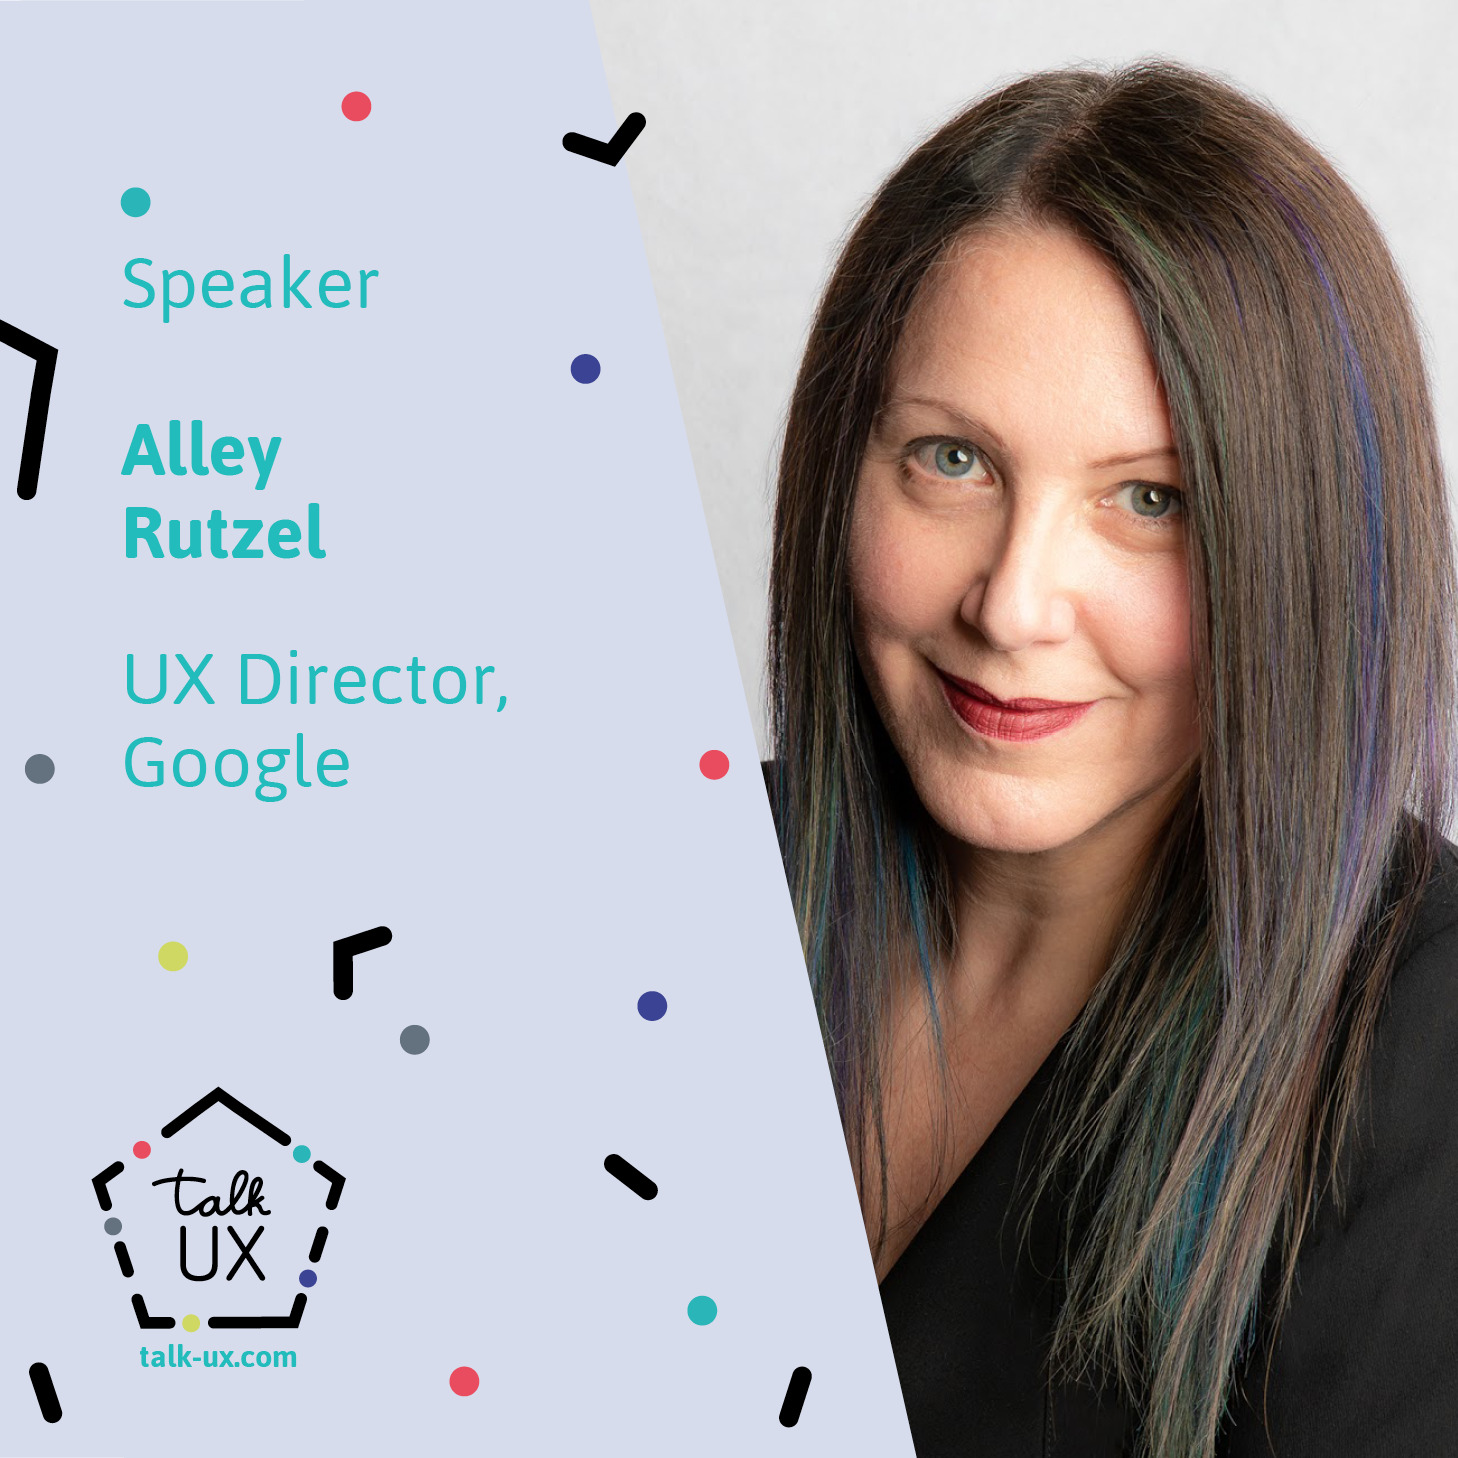 Speaker | Alley Rutzel | UX Director | Google